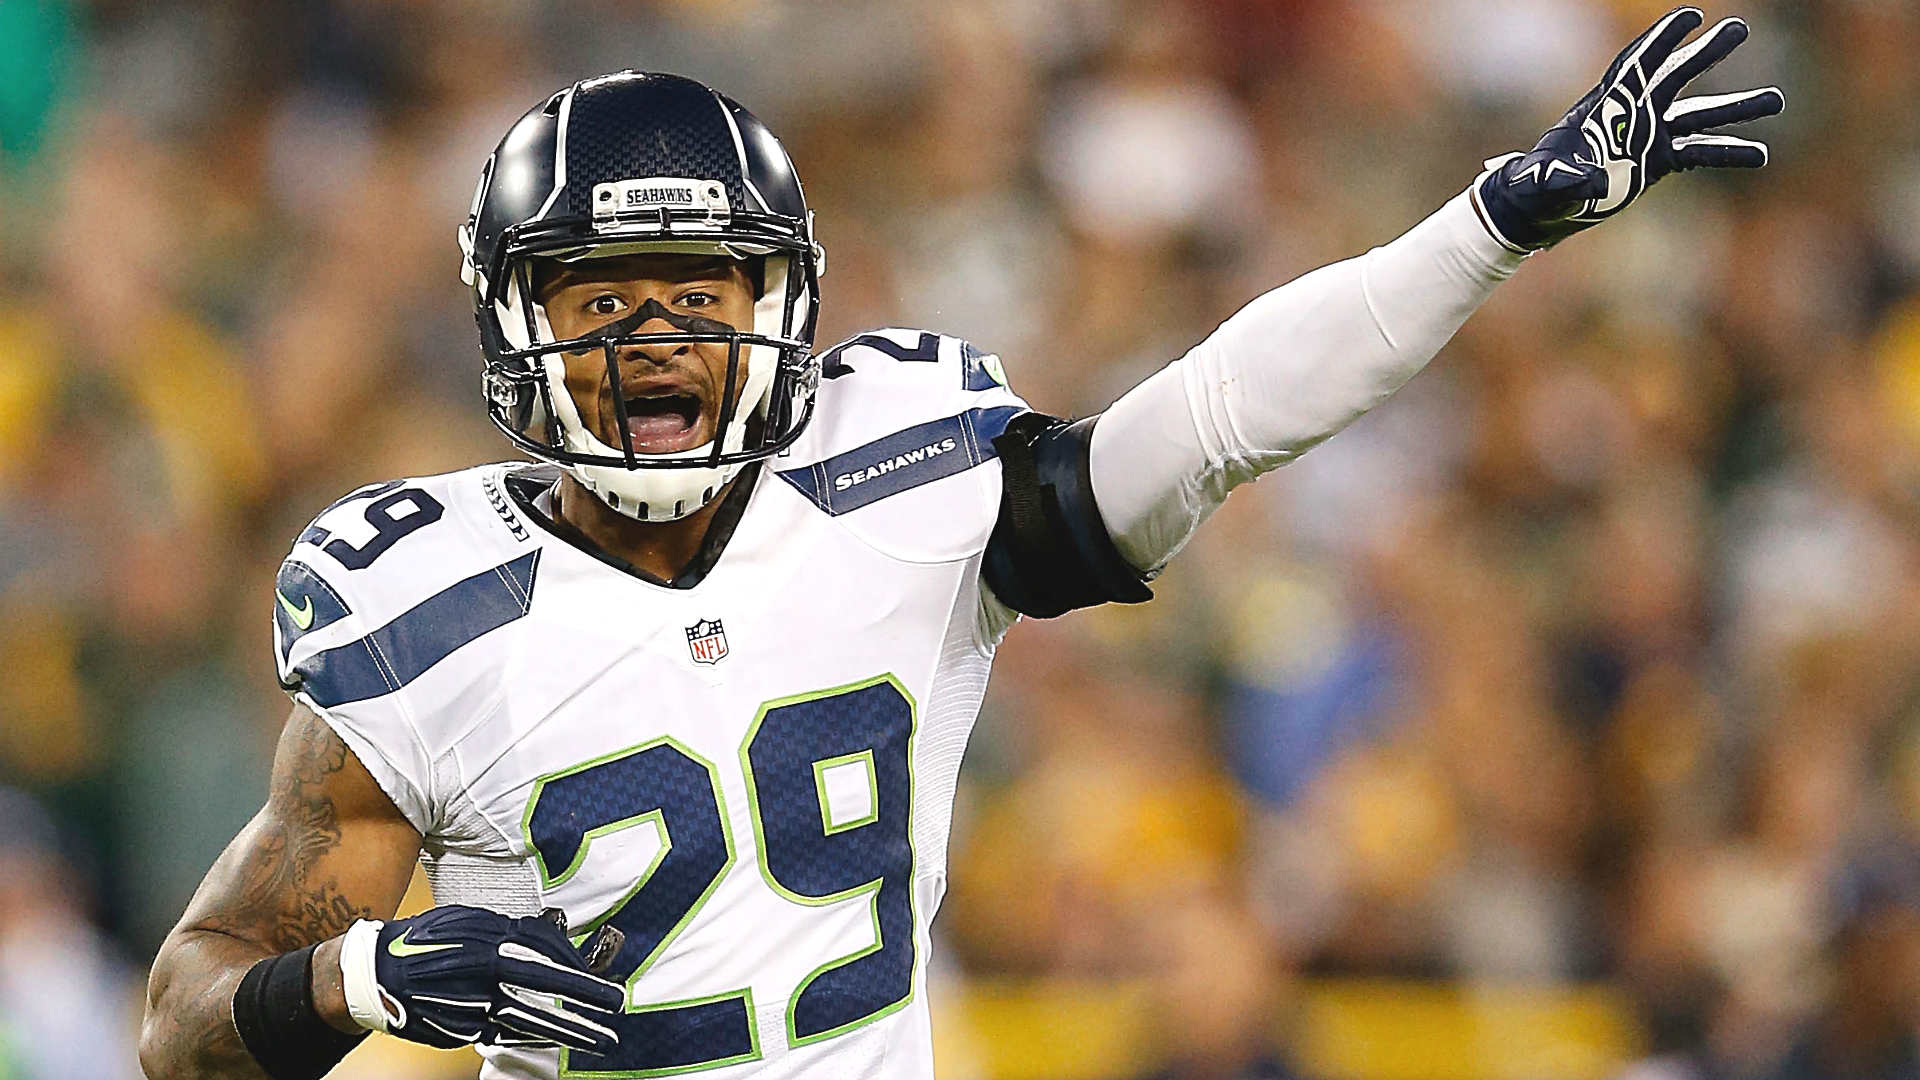 Earl Thomas 'way ahead of schedule' in recovery from gruesome leg